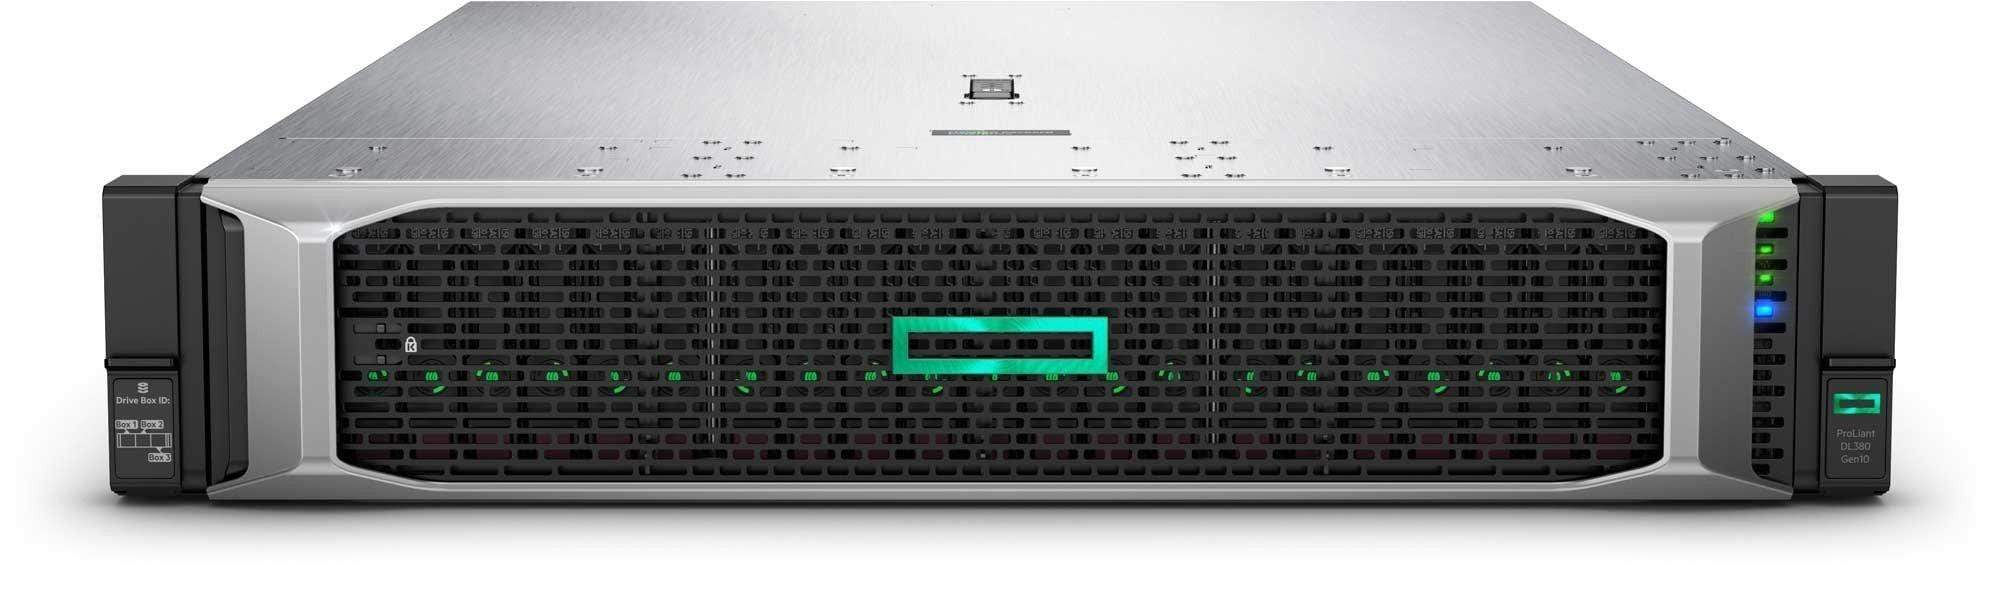 P06423-B21 - HPE DL380 GEN10 6130 1P 64G 8SFF Server